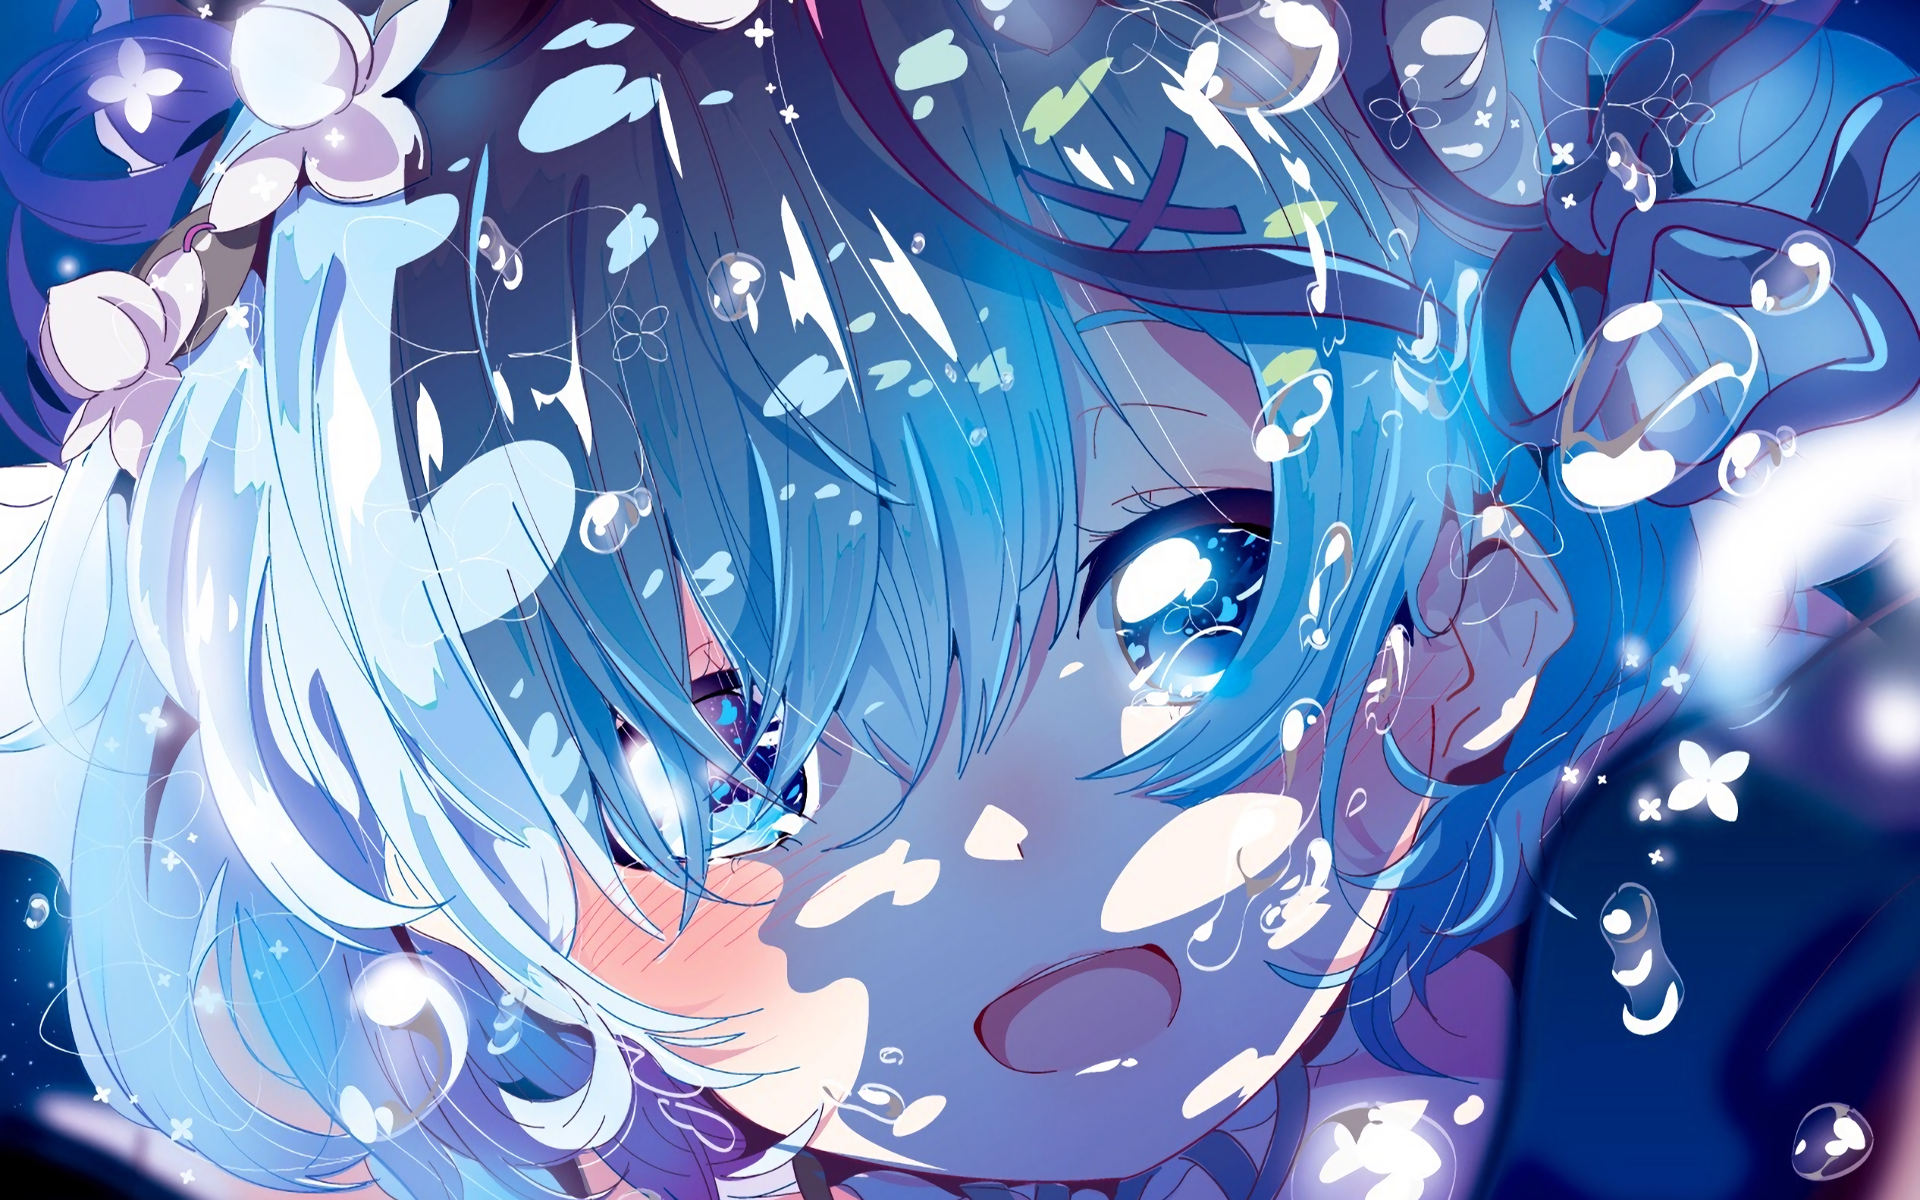 975 rem re zero hd wallpapers background images wallpaper abyss